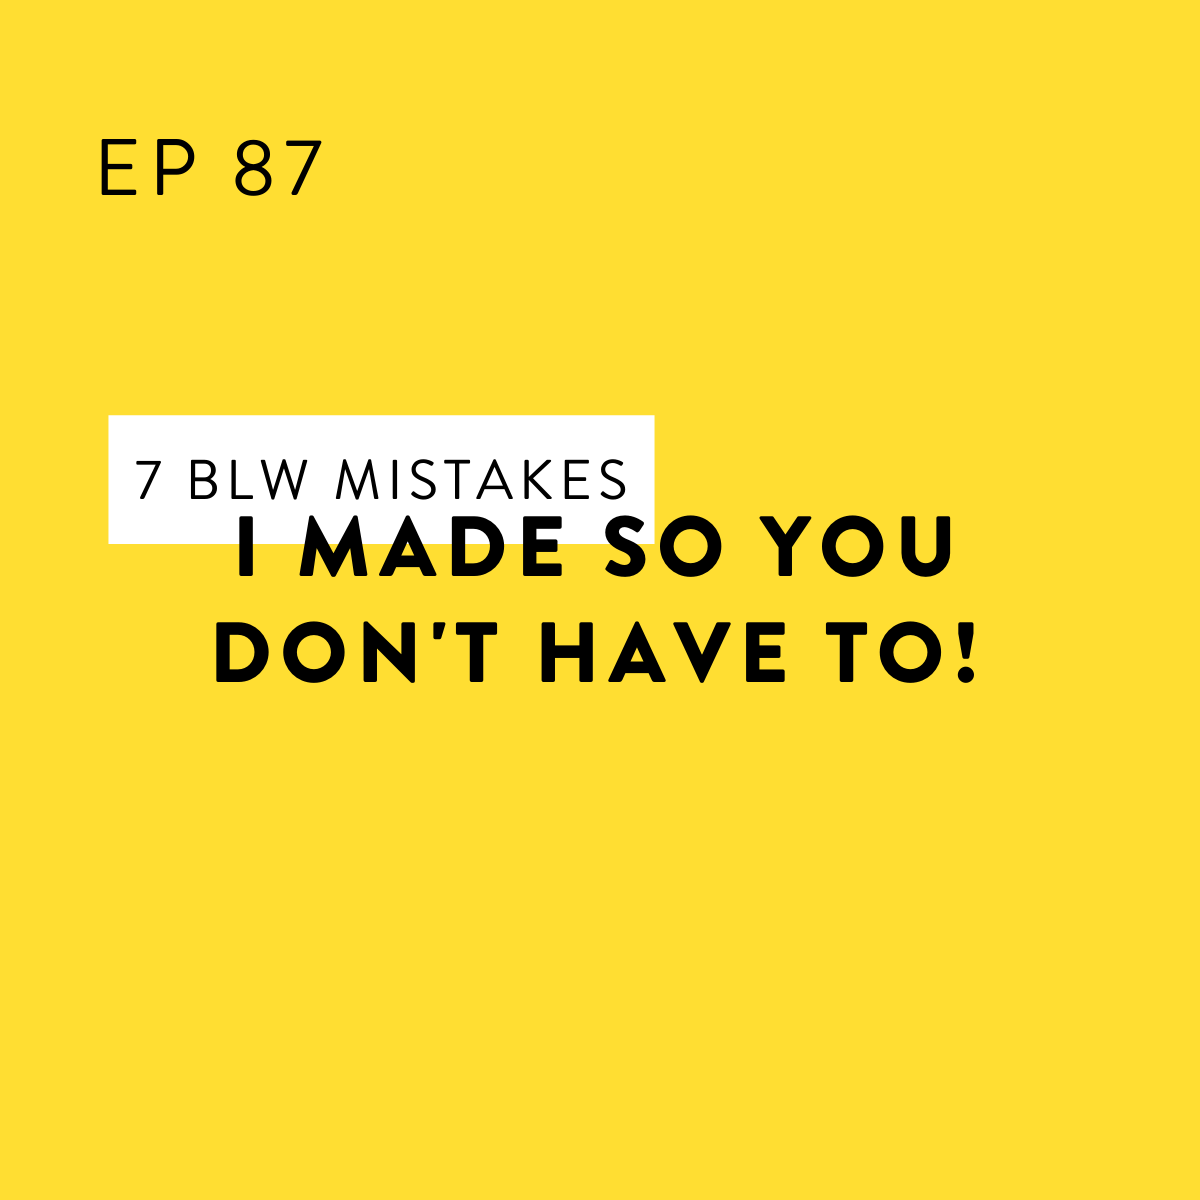 7 BLW Mistakes I Made So YOU Don't Have To!